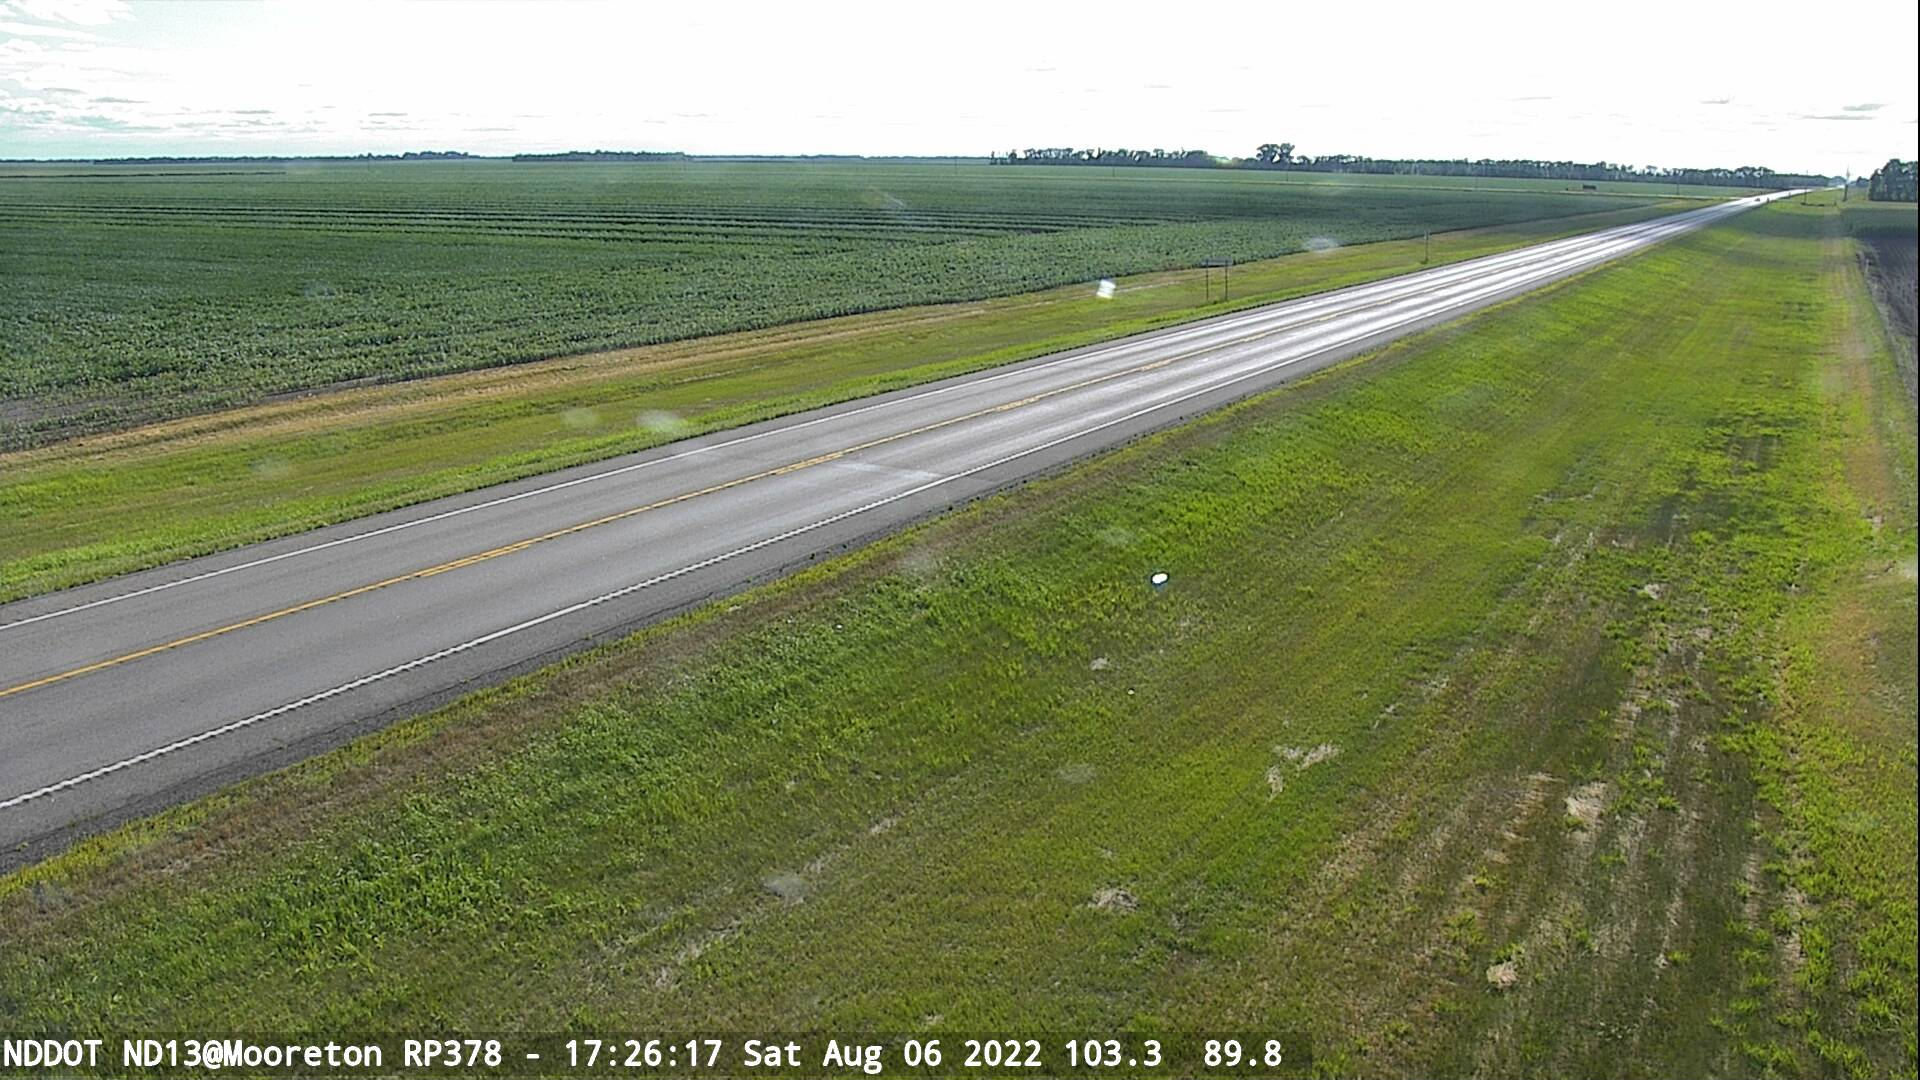 Mooreton - West (ND 13 MP 378) - NDDOT